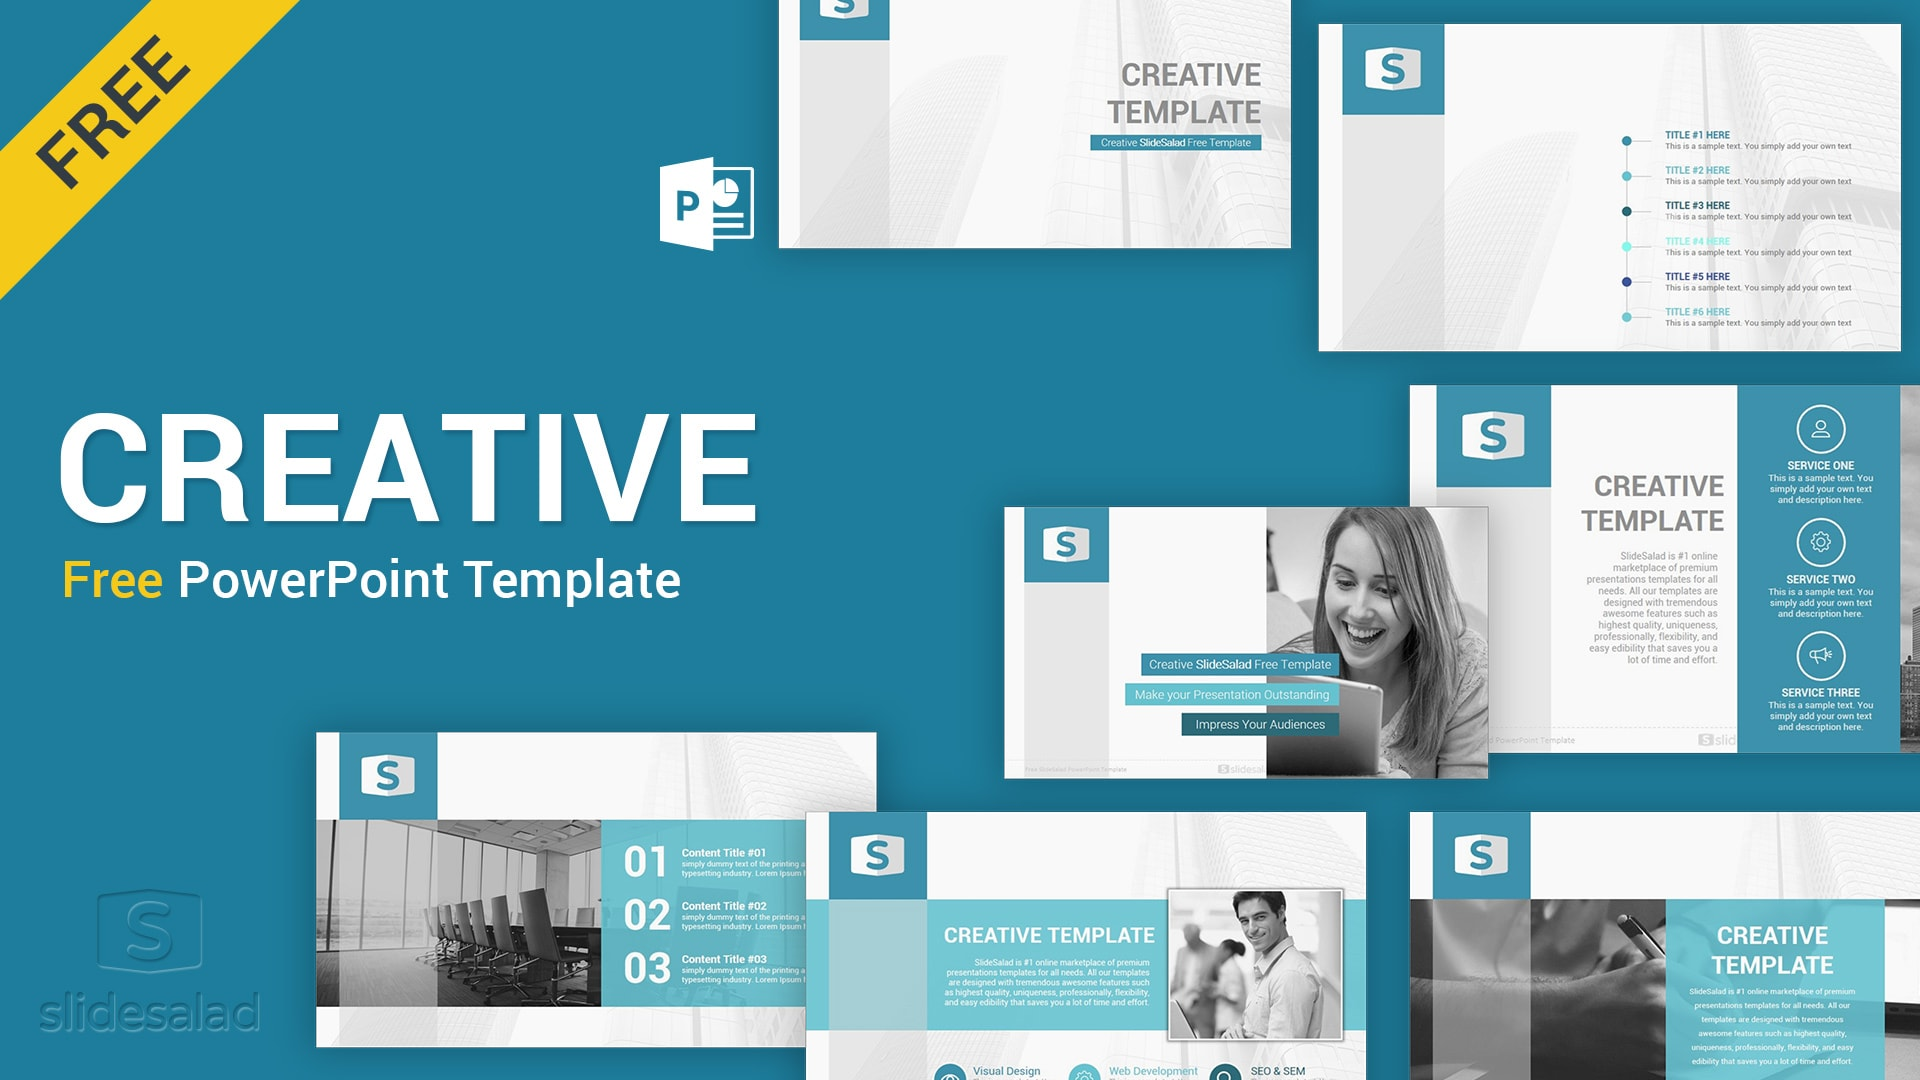 20 Best Free Powerpoint Presentation Templates To Download In 2020,Pakistani Designer Dresses Online Shopping